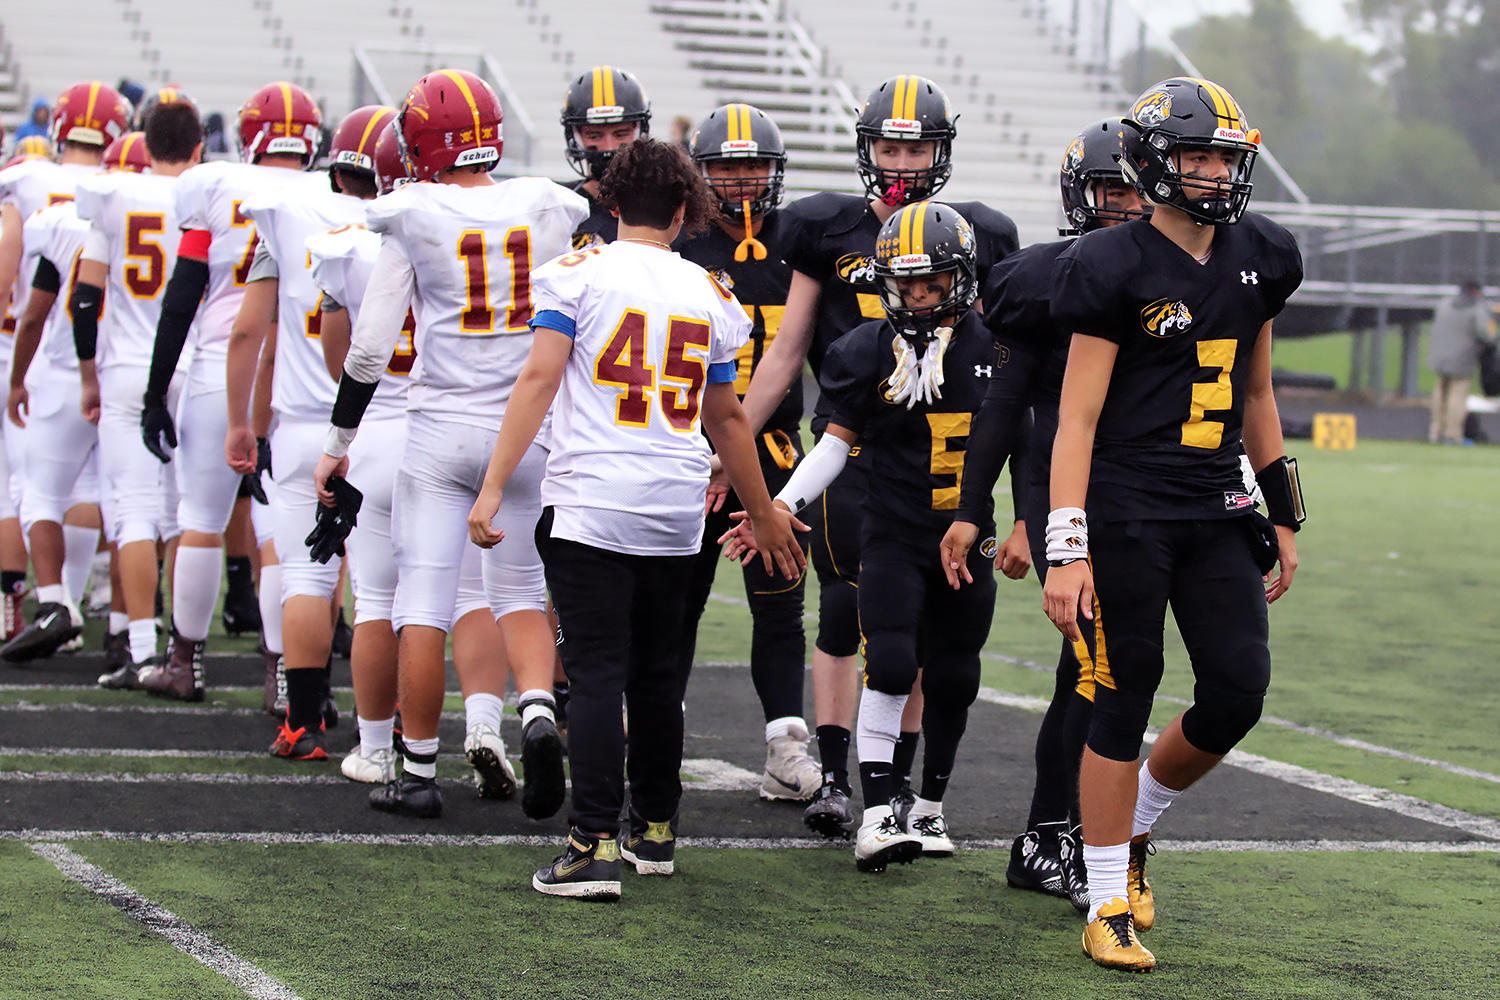 EPHS quarterback Mike Stranski (2) leads the Tigers through their postgame handshakes with the Westmont Sentinels.